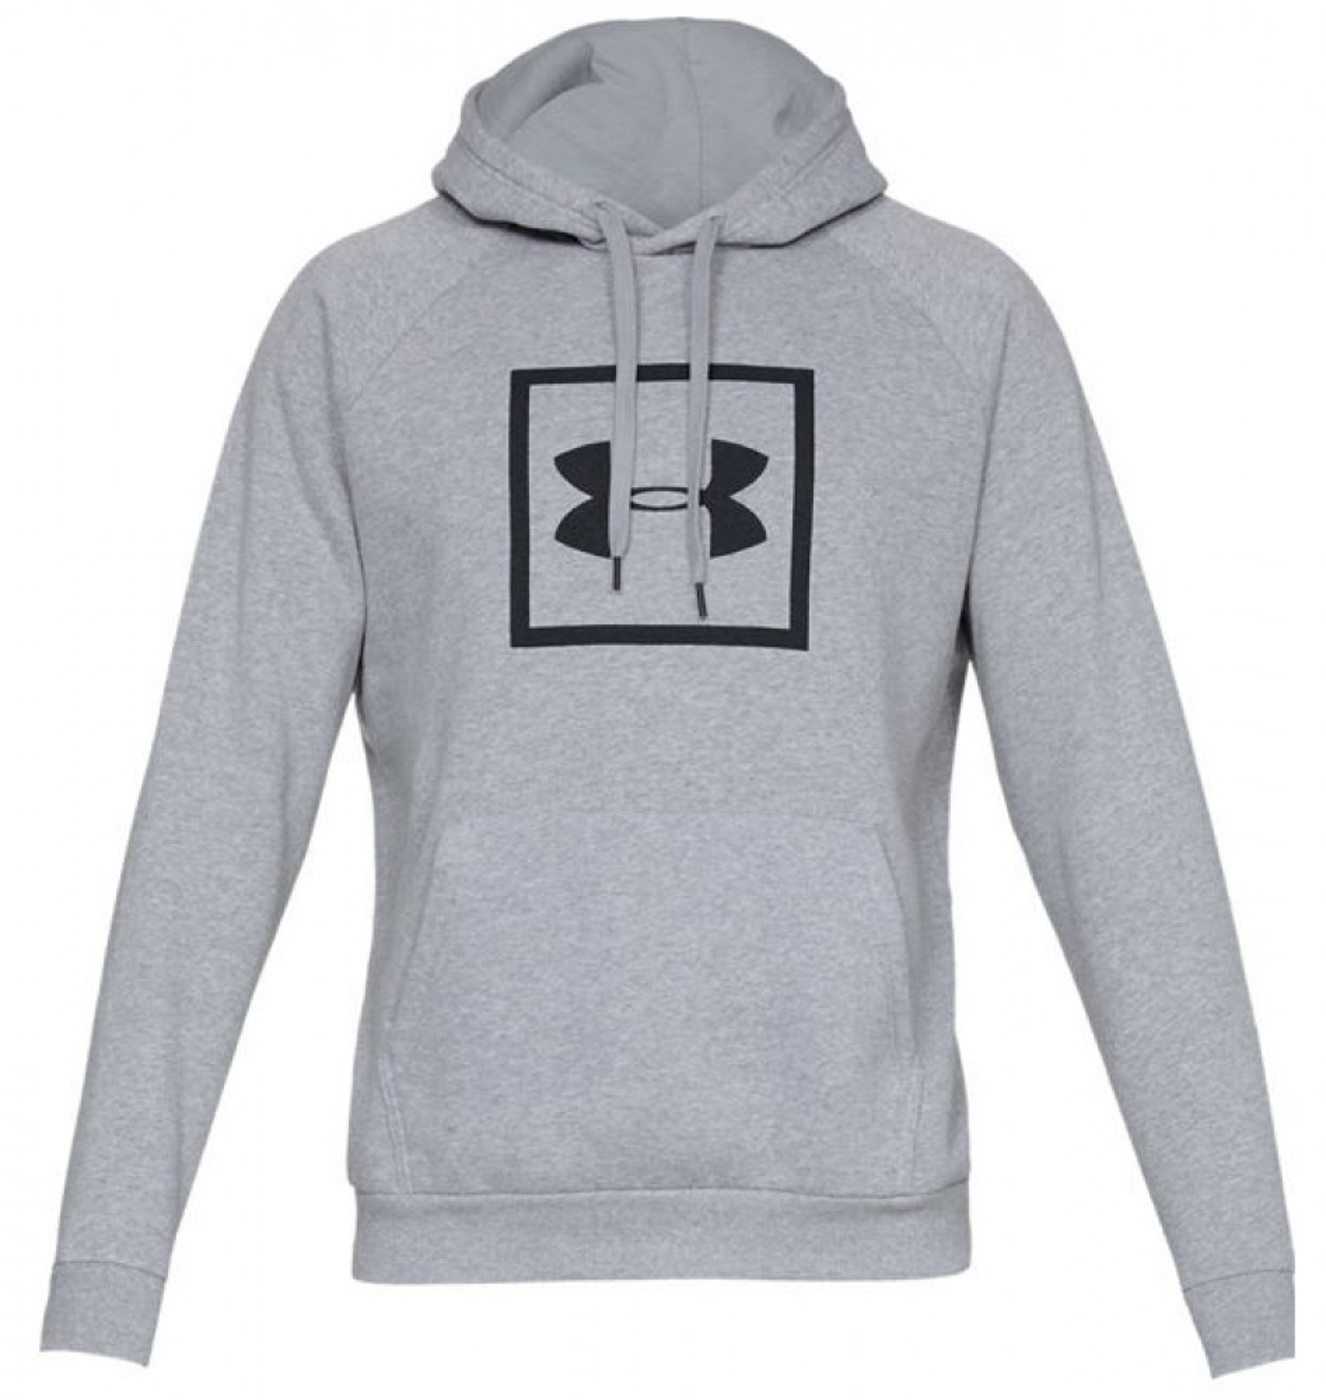 UNDER ARMOUR RIVAL FLEECE LOGO HOODY - Herren